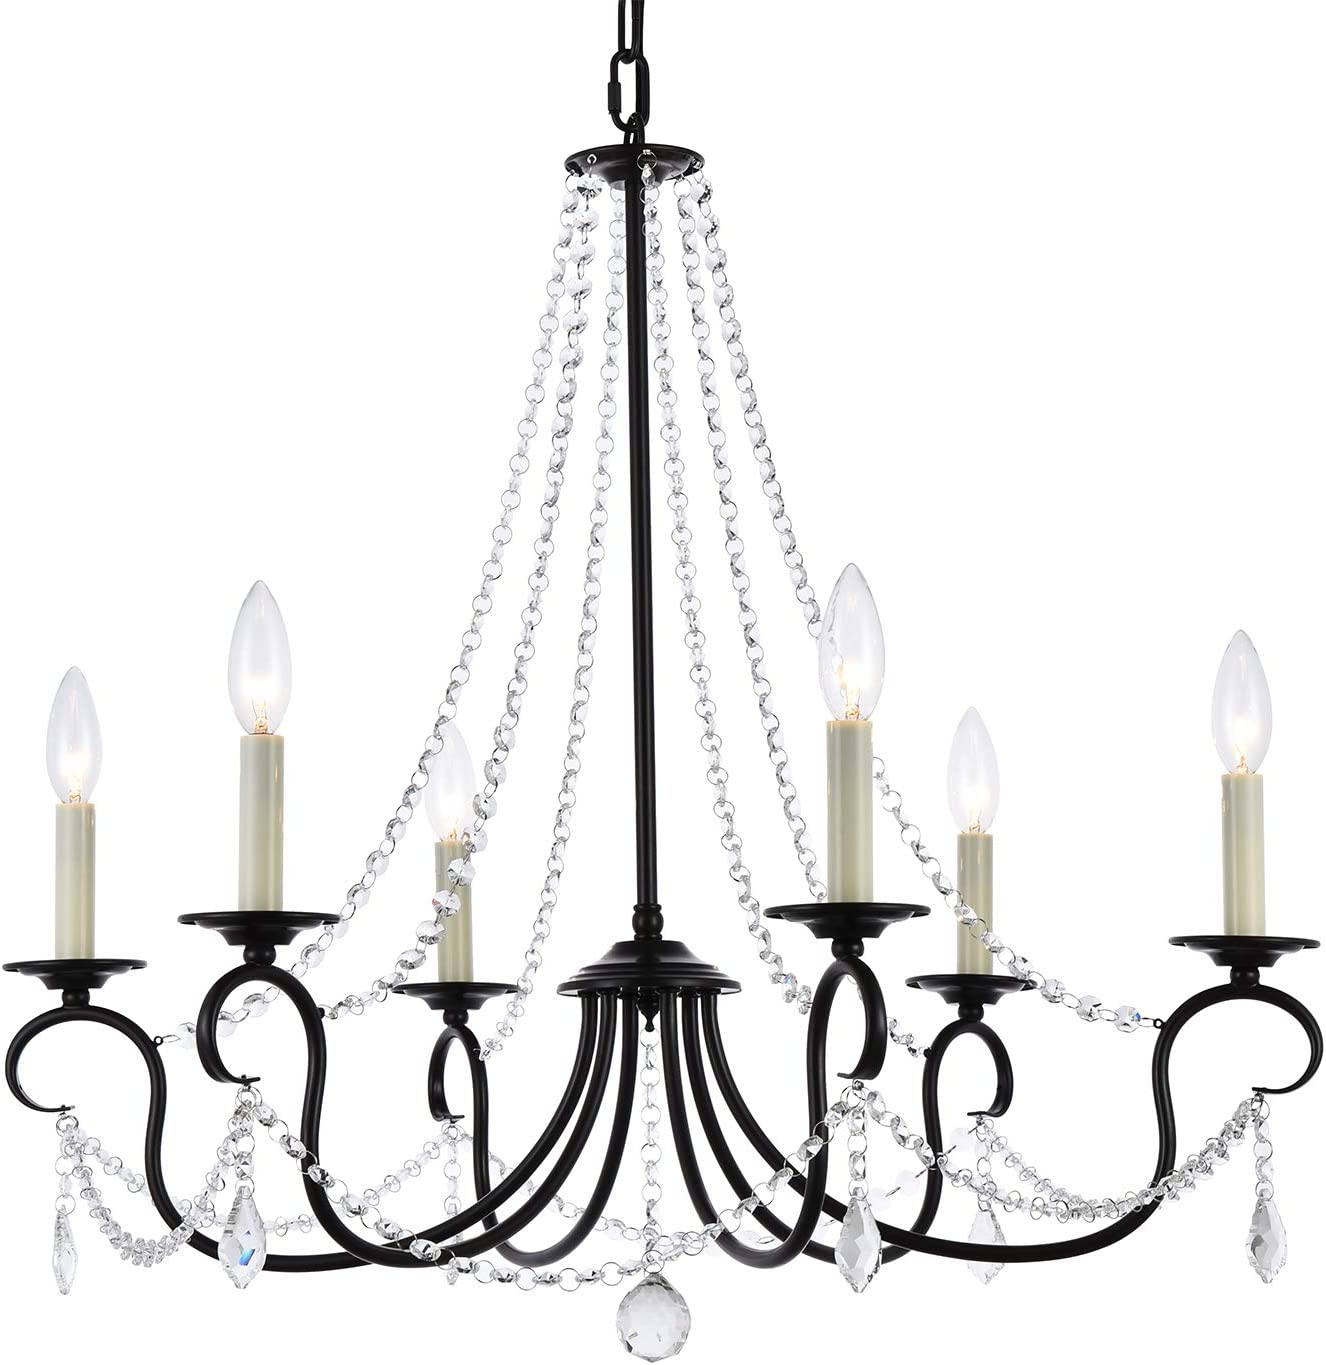 A1a9 Modern 6 Light Candle Style Chandelier With Crystal Accents Simple Classic Traditional Pendant Light Kitchen Island Ceiling Light Fixture For Entryway Hallway Dining Room Foyer Dark Bronze